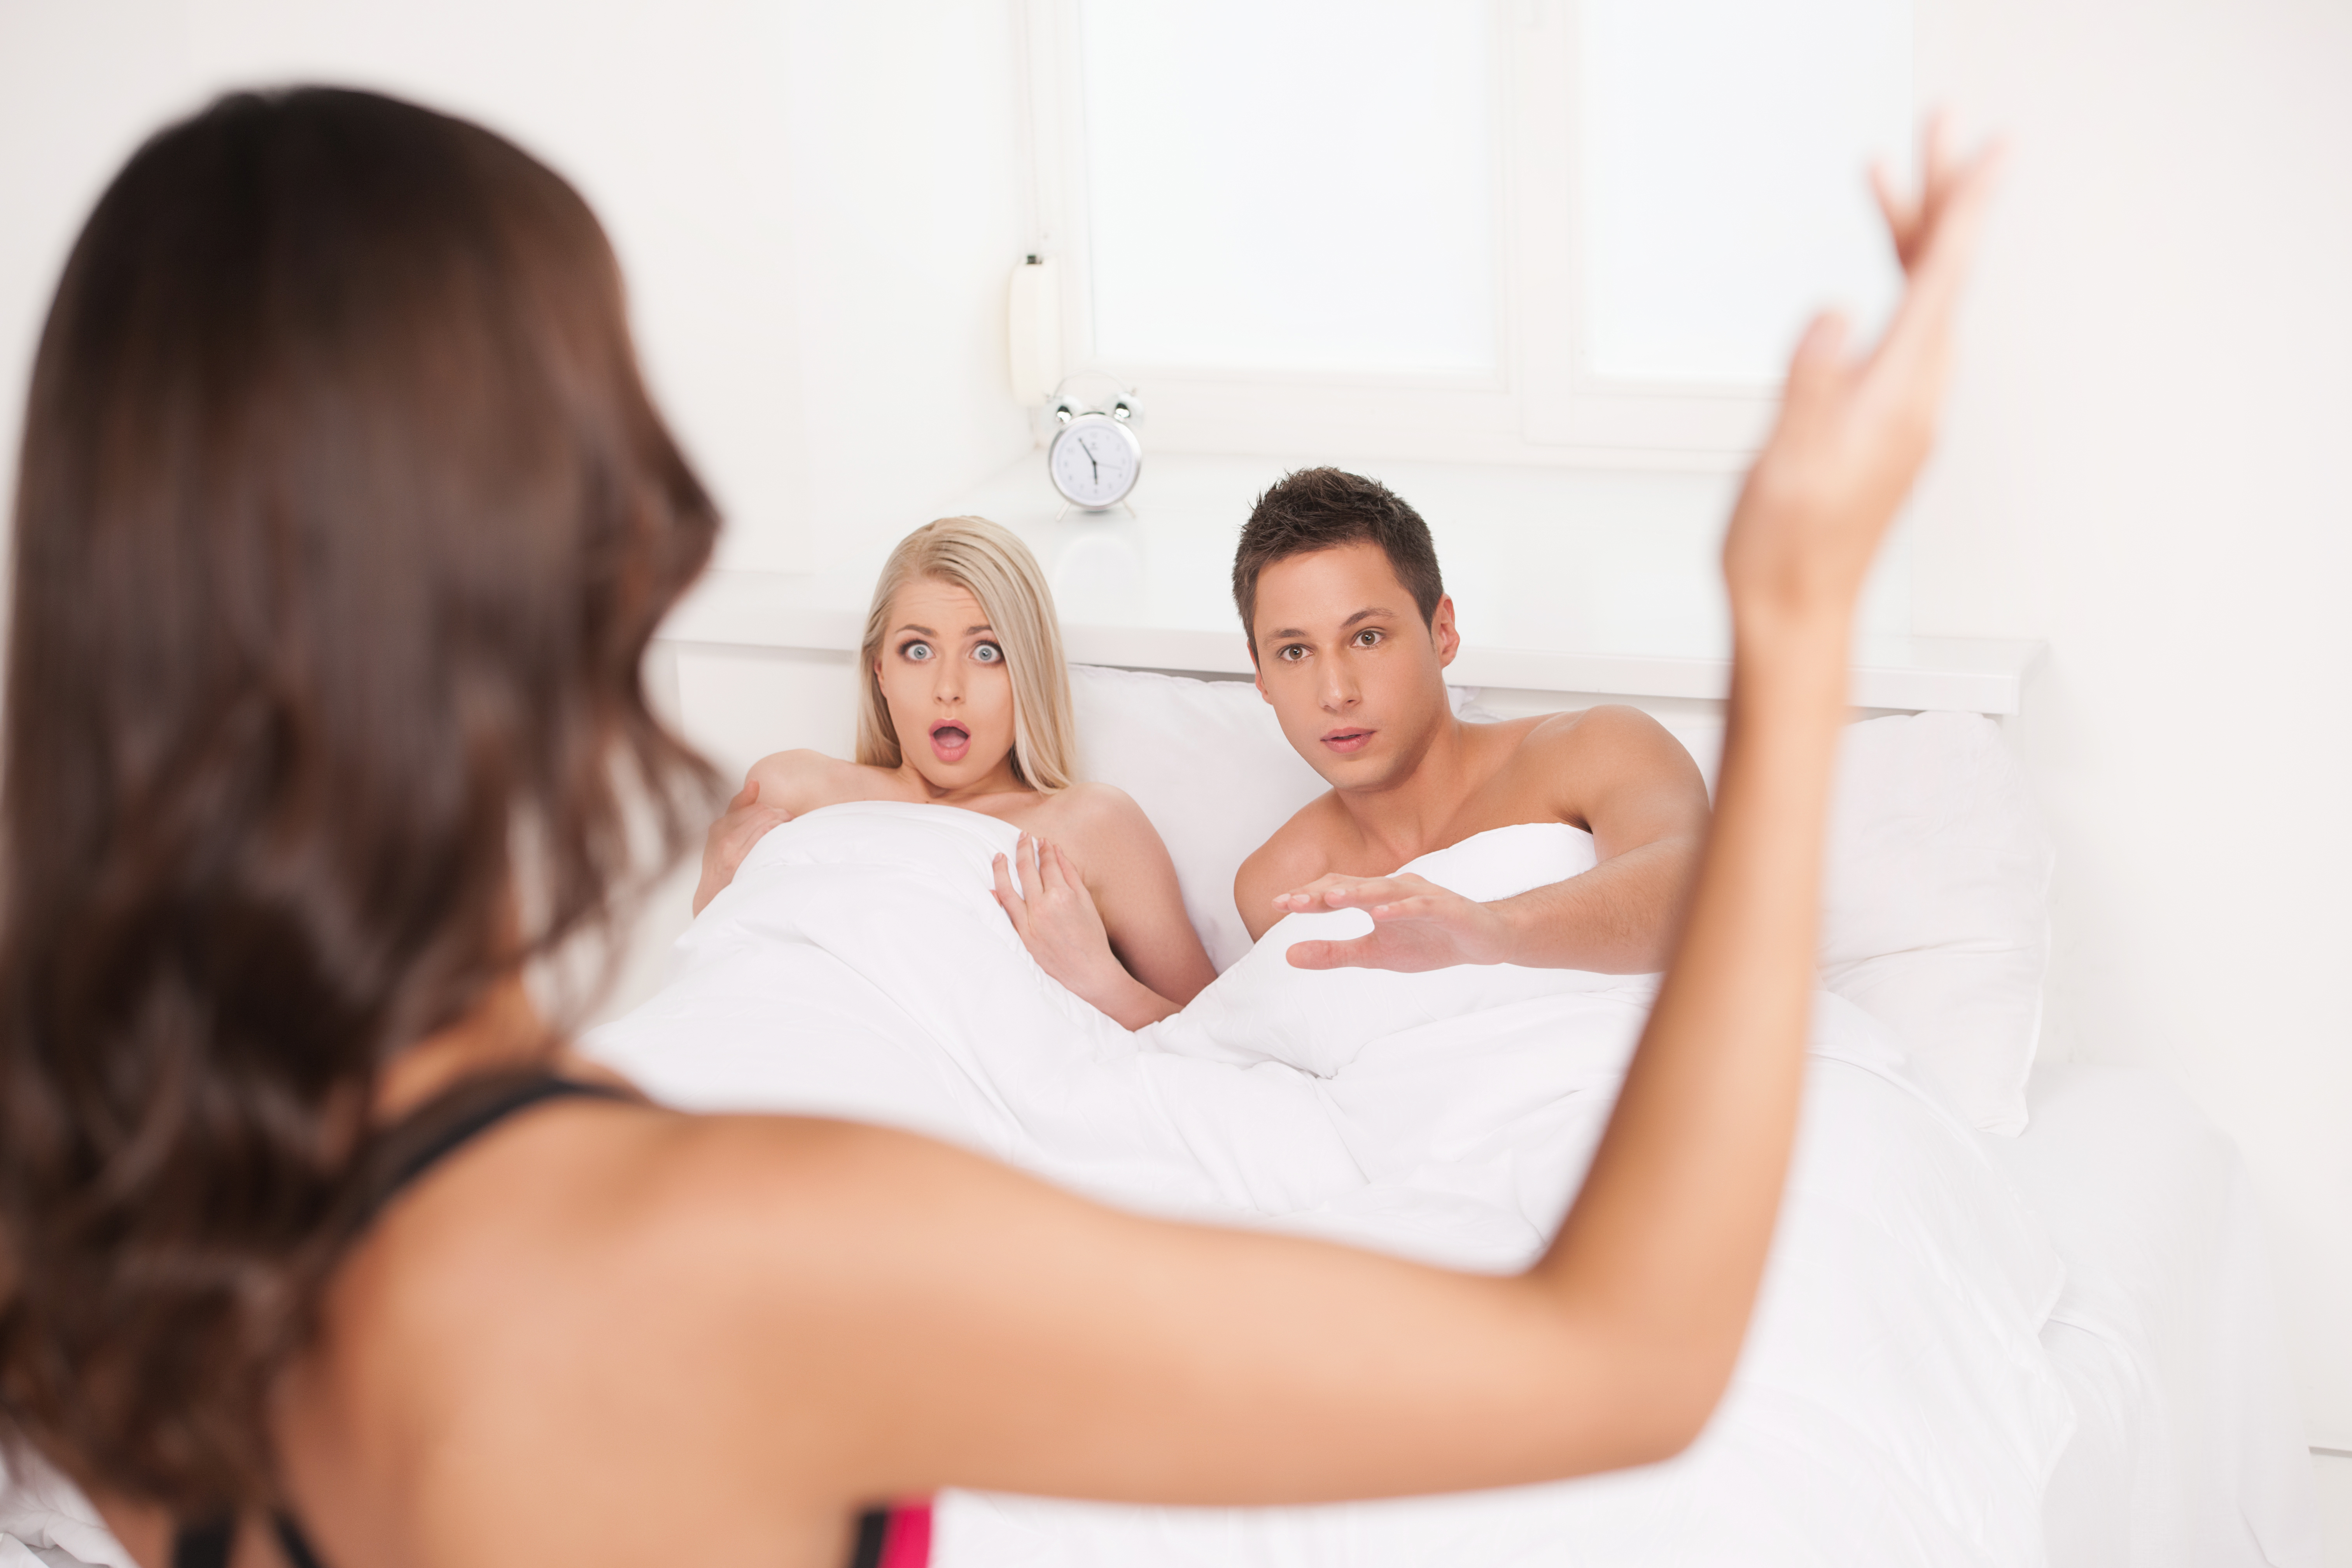 Girl Tries To Shame Her Cheating Boyfriend On Facebook, He Turns The Tables On Her